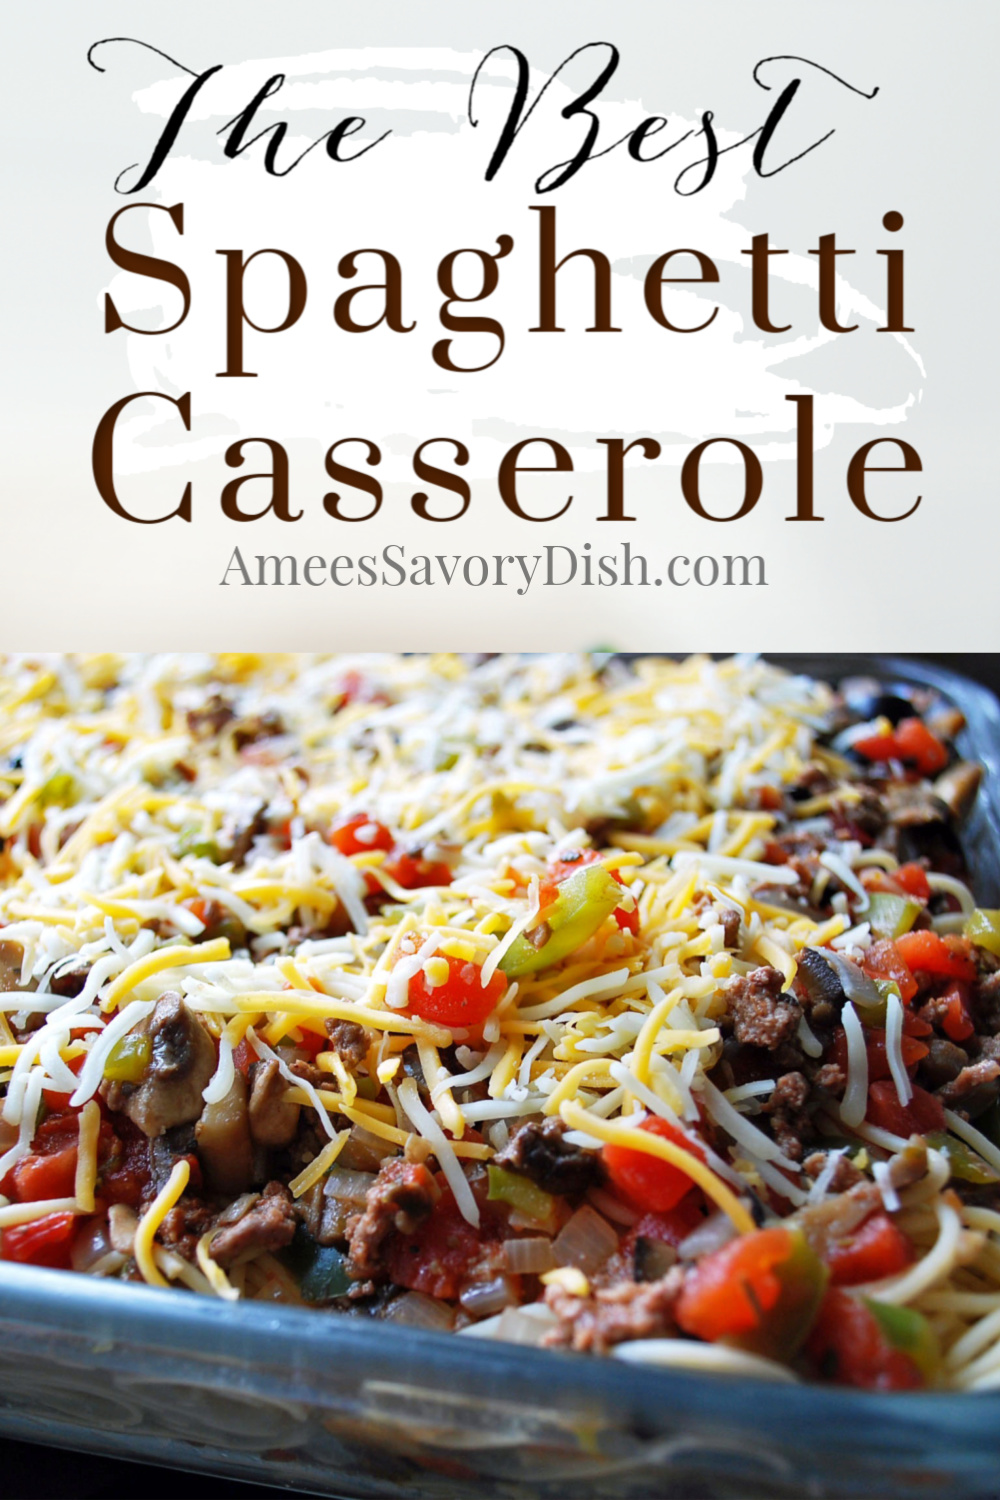 A family favorite recipe for baked spaghetti casserole made with whole grain pasta, sharp white cheddar cheese, lean ground beef, peppers, mushrooms, and spices. Easy and SO delicious! #bakedspaghetti #spaghetticasserole #beefcasserole #casserolerecipe via @Ameecooks